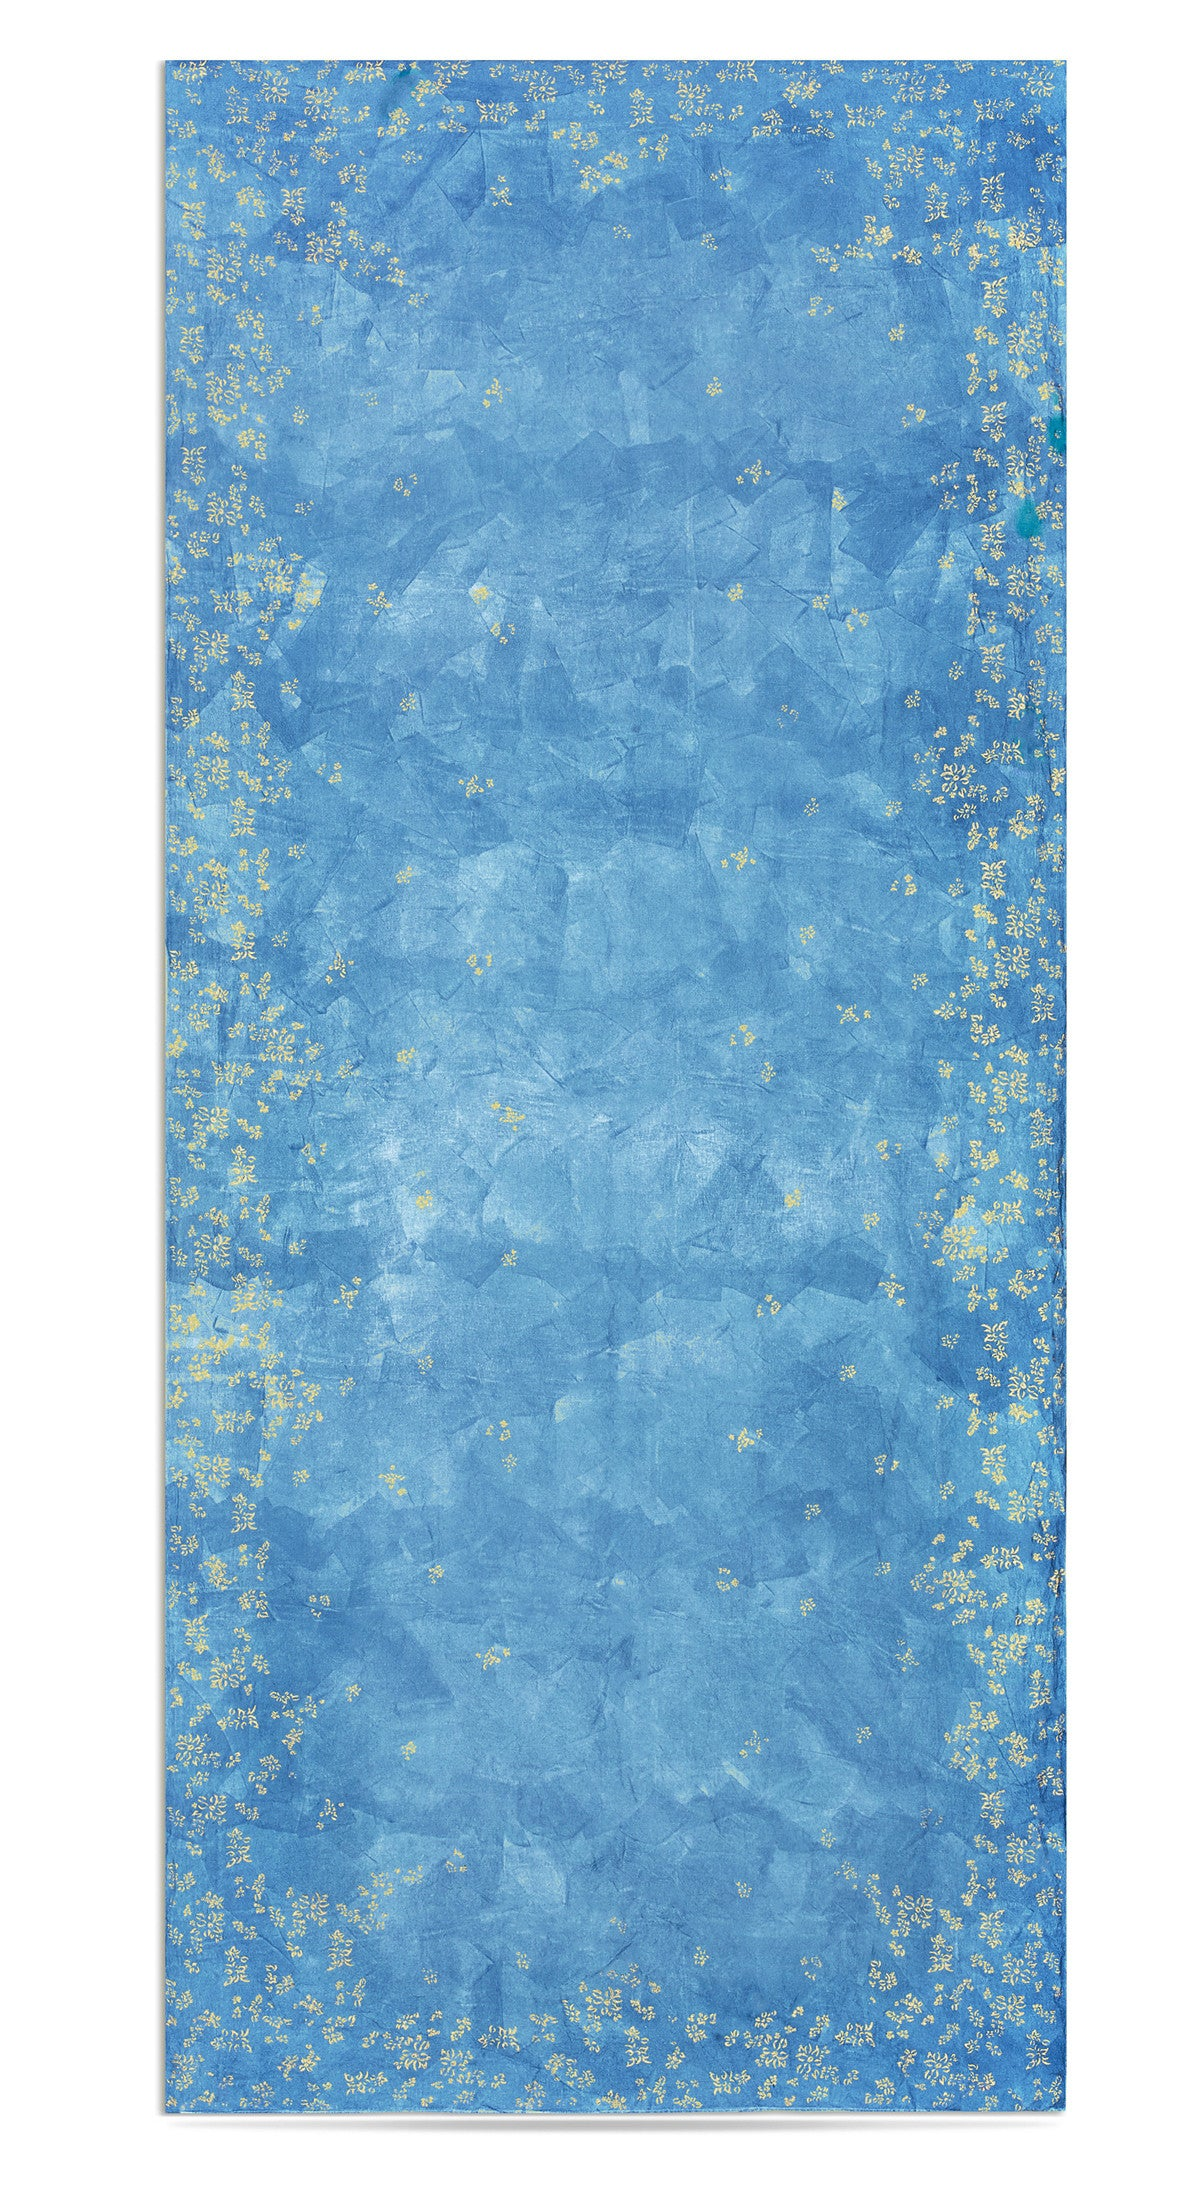 Bernadette's Falling Flower On Full Field Linen Tablecloth in Sky Blue & Gold